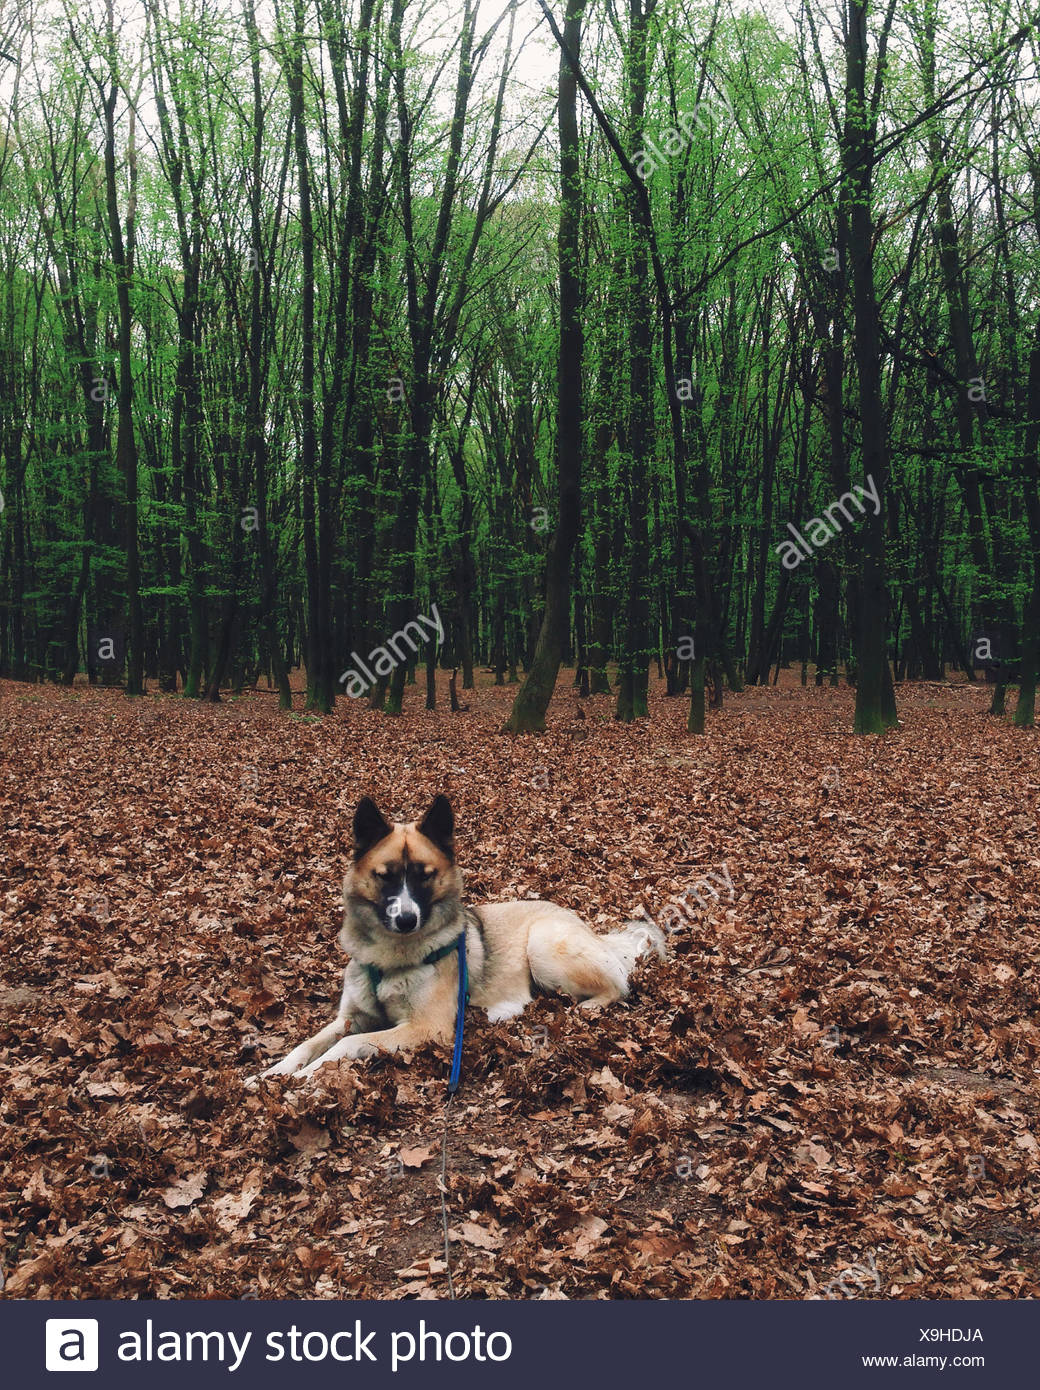 Portrait of a husky dog lying on autumn leaves in forest - Stock Image